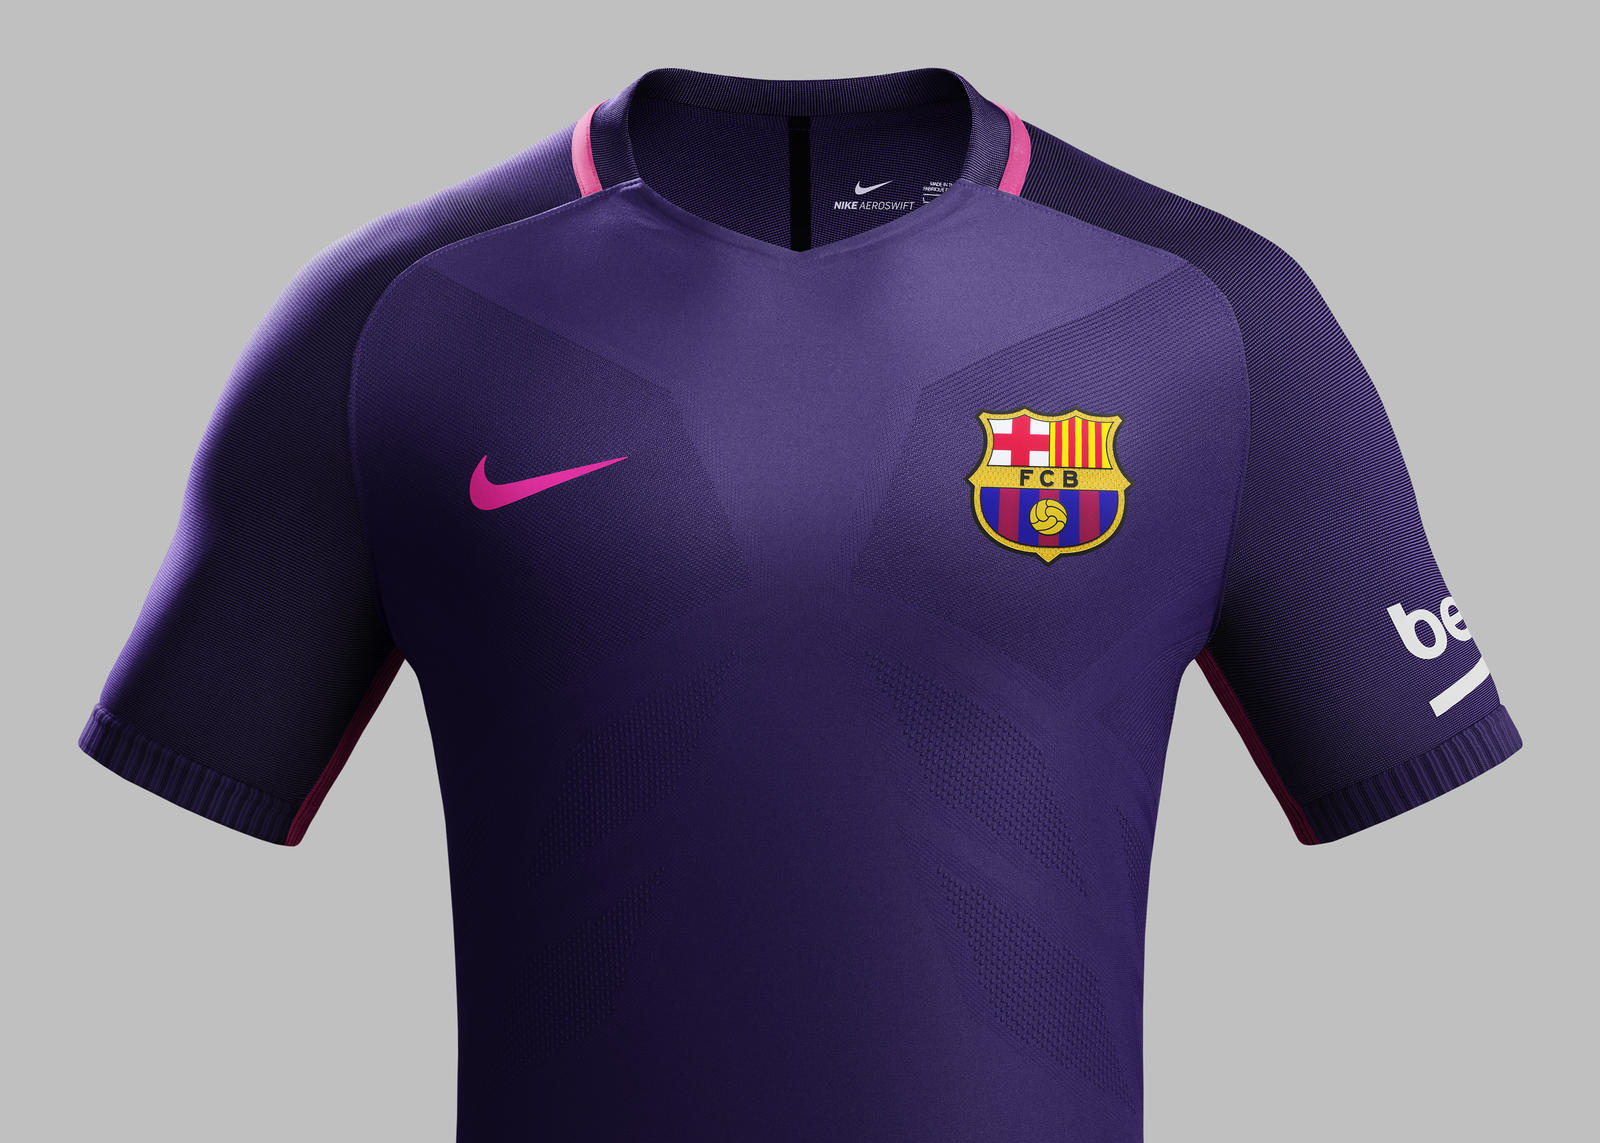 Su16 CK Comms A Front Match FCB R. FC Barcelona away kit 2016-2017.  Su16 CK Comms A Crest Match FCB R ad5fd9023a6b